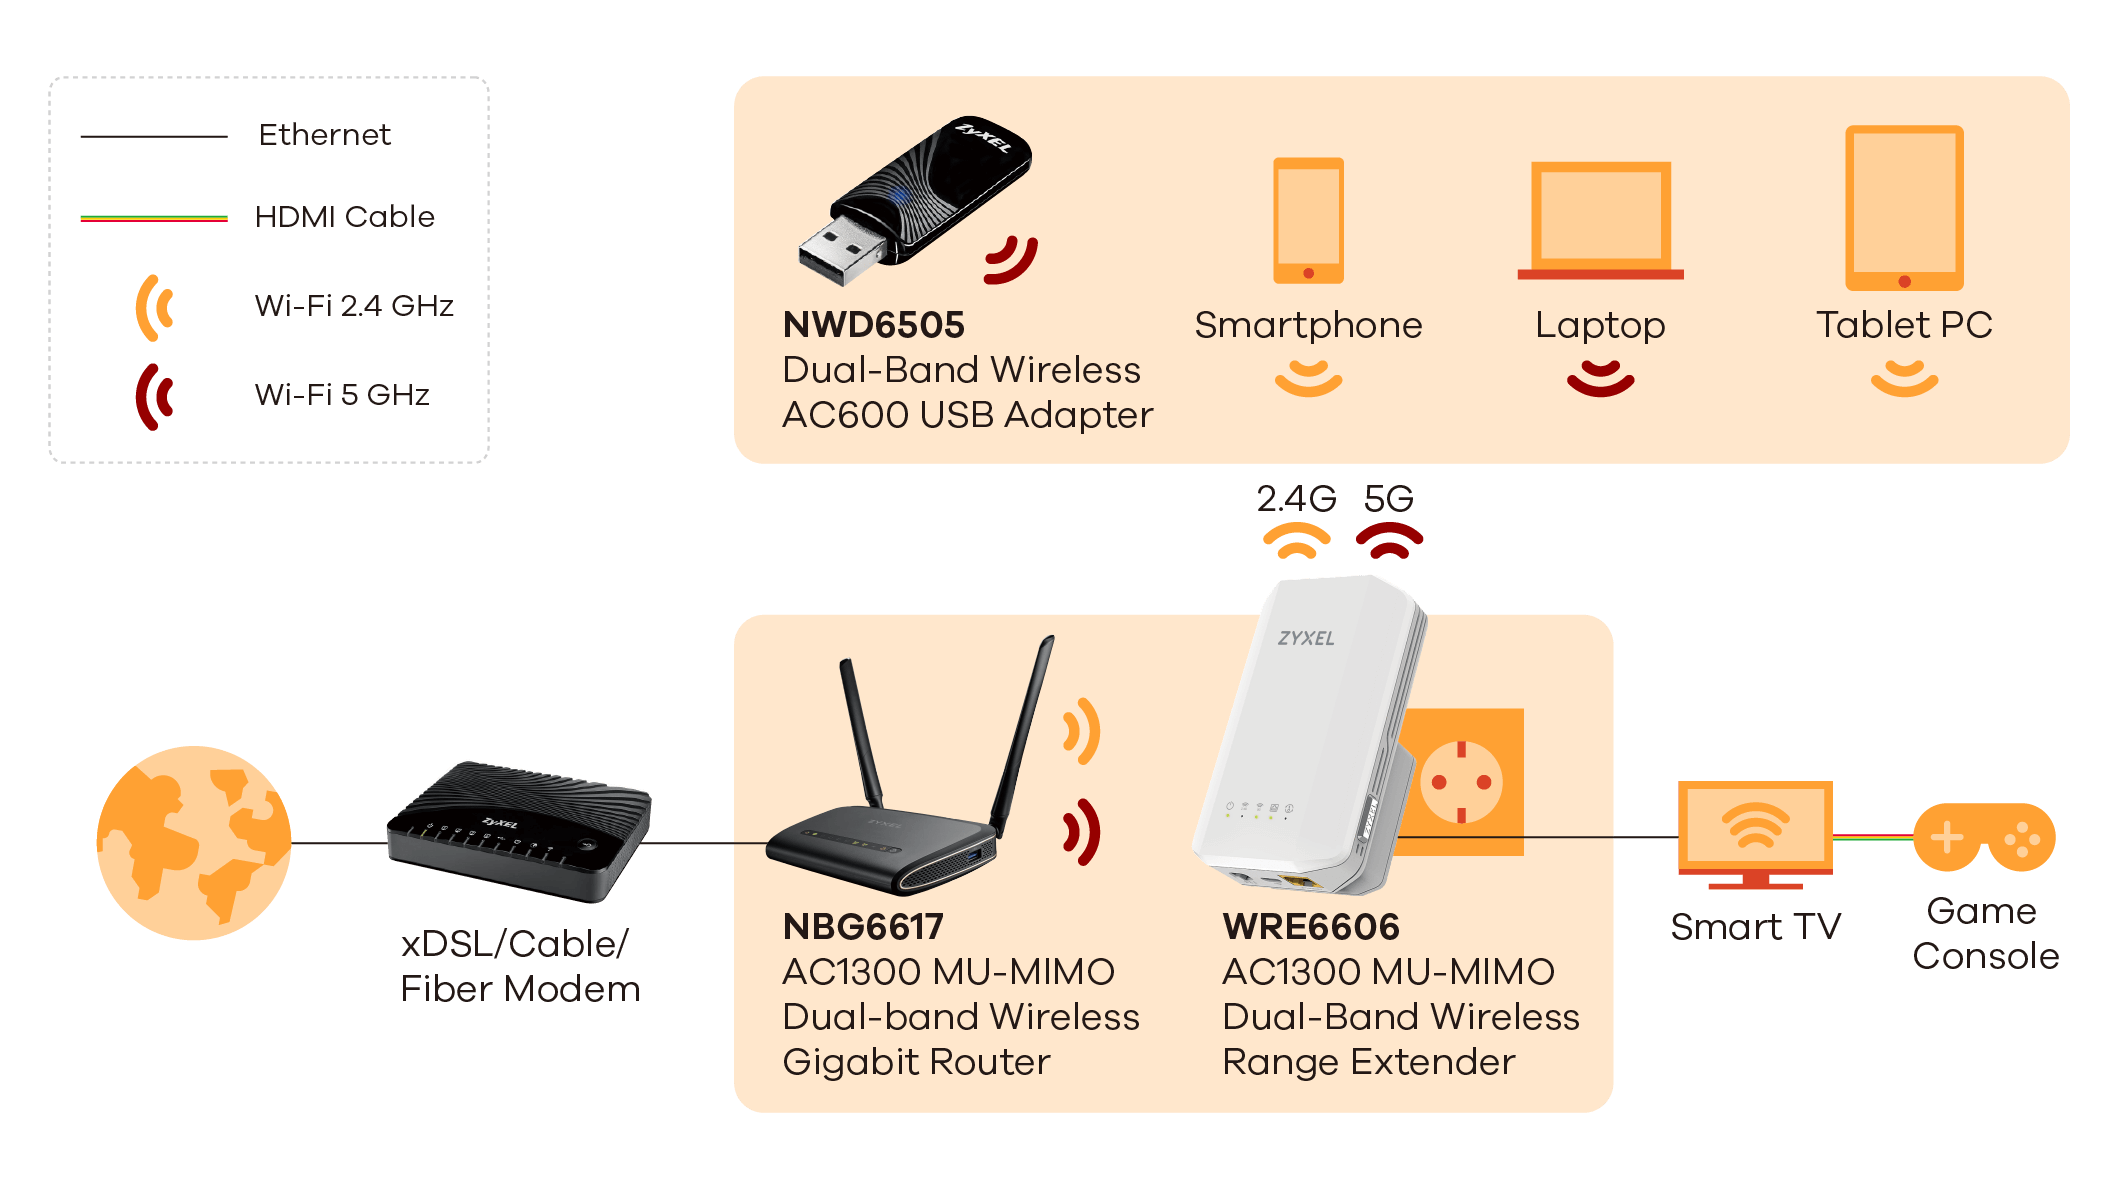 Wre6606 Ac1300 Mu Mimo Dual Band Wireless Range Extender Zyxel Building Diagram For Routers Application